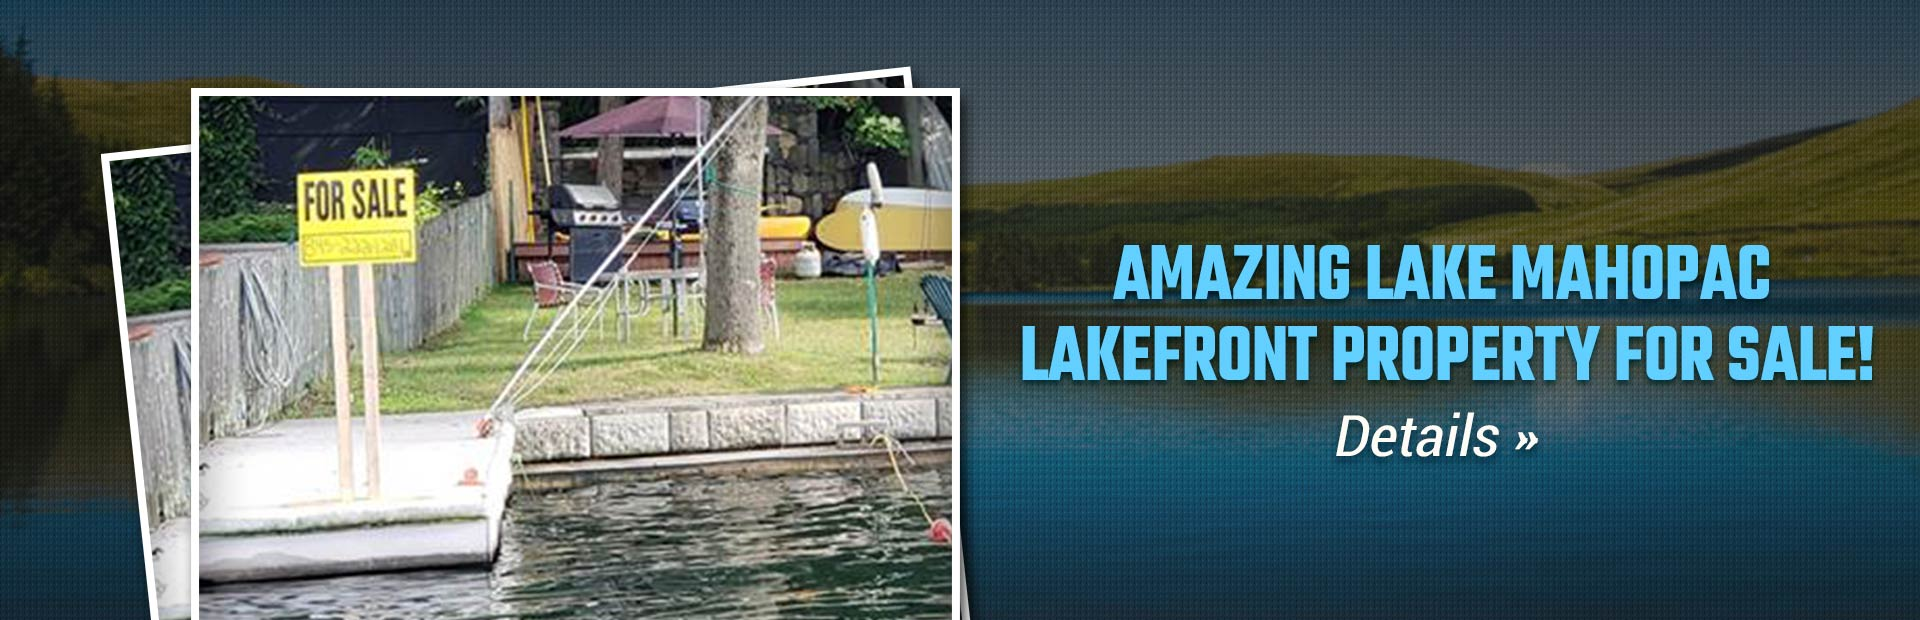 Amazing Lake Mahopac Lakefront Property for Sale: Click here for details.